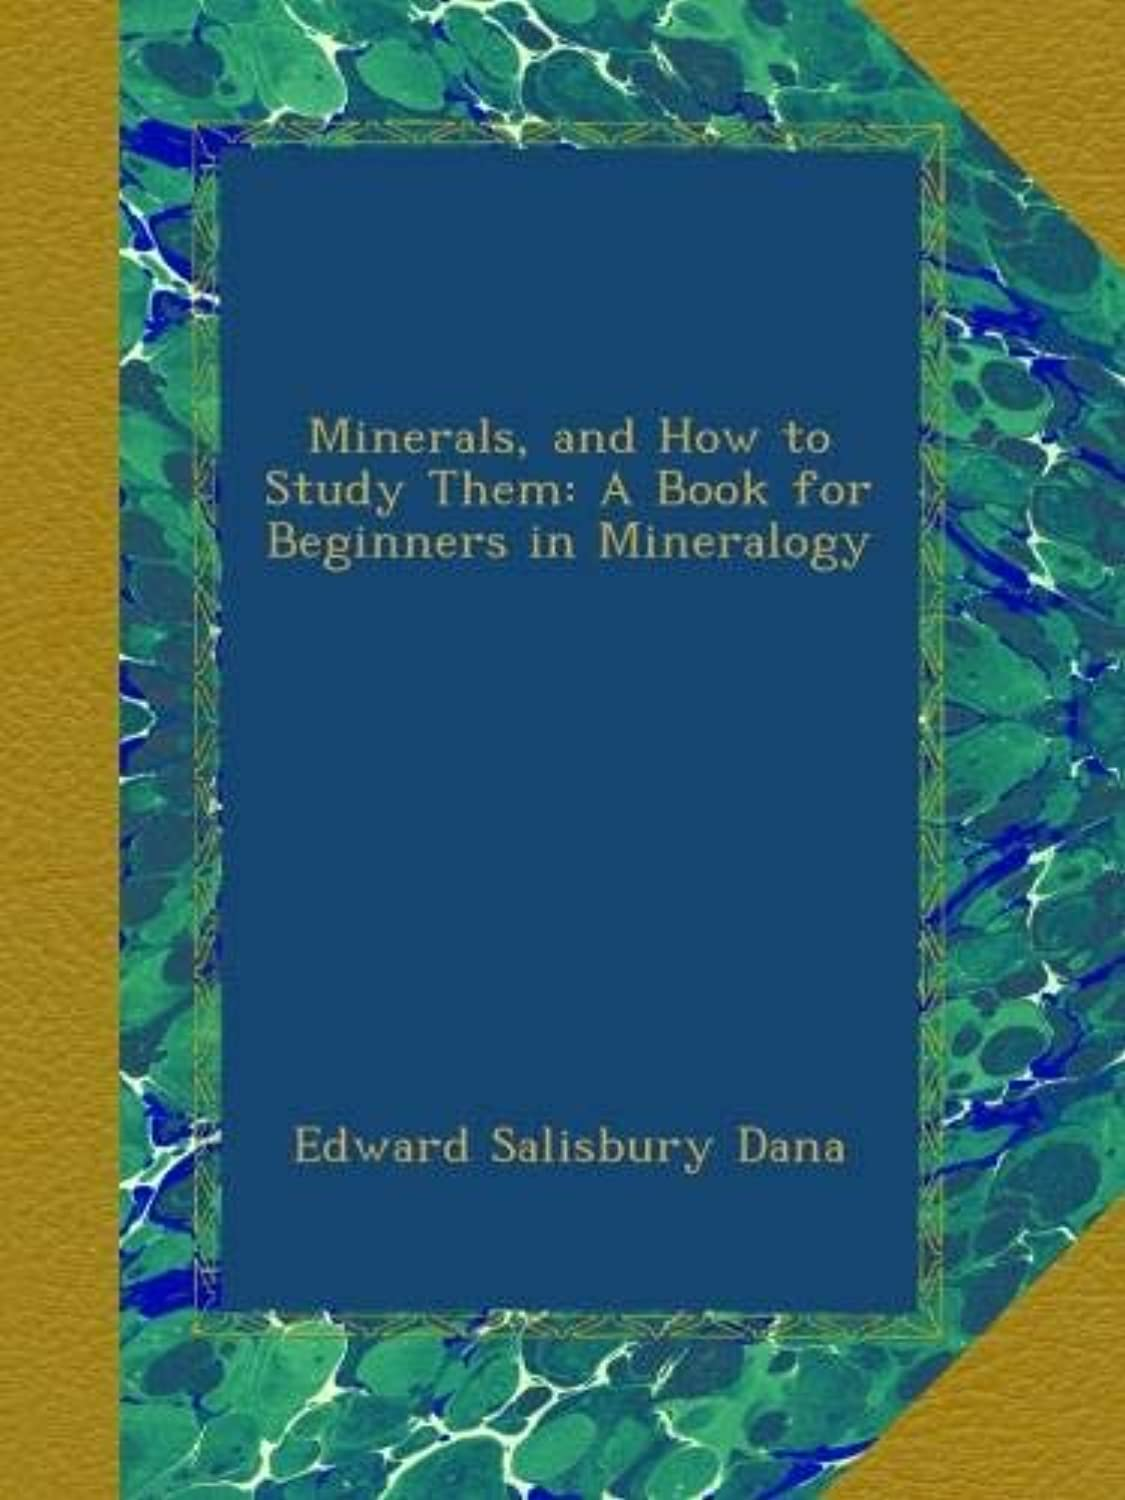 Minerals, and How to Study Them: A Book for Beginners in Mineralogy